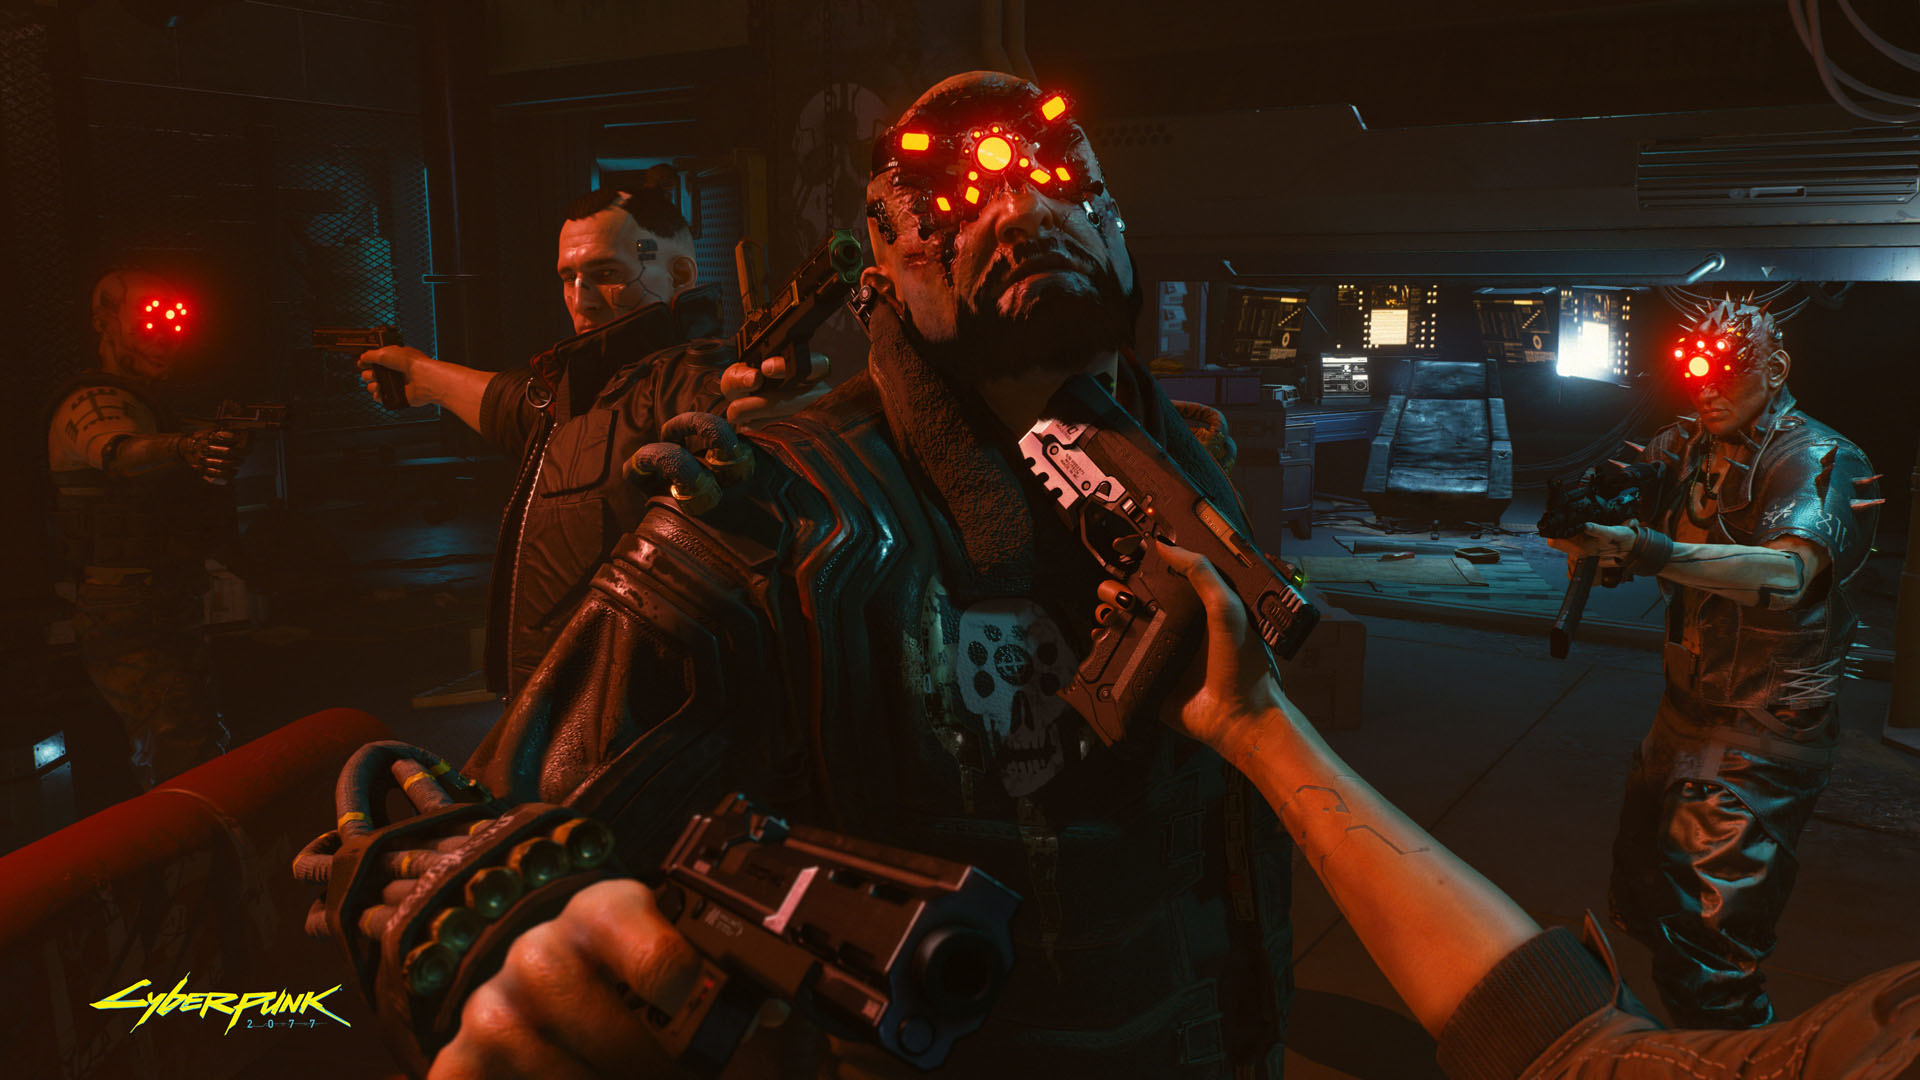 Cyberpunk 2077 Outnumbered but not outgunned